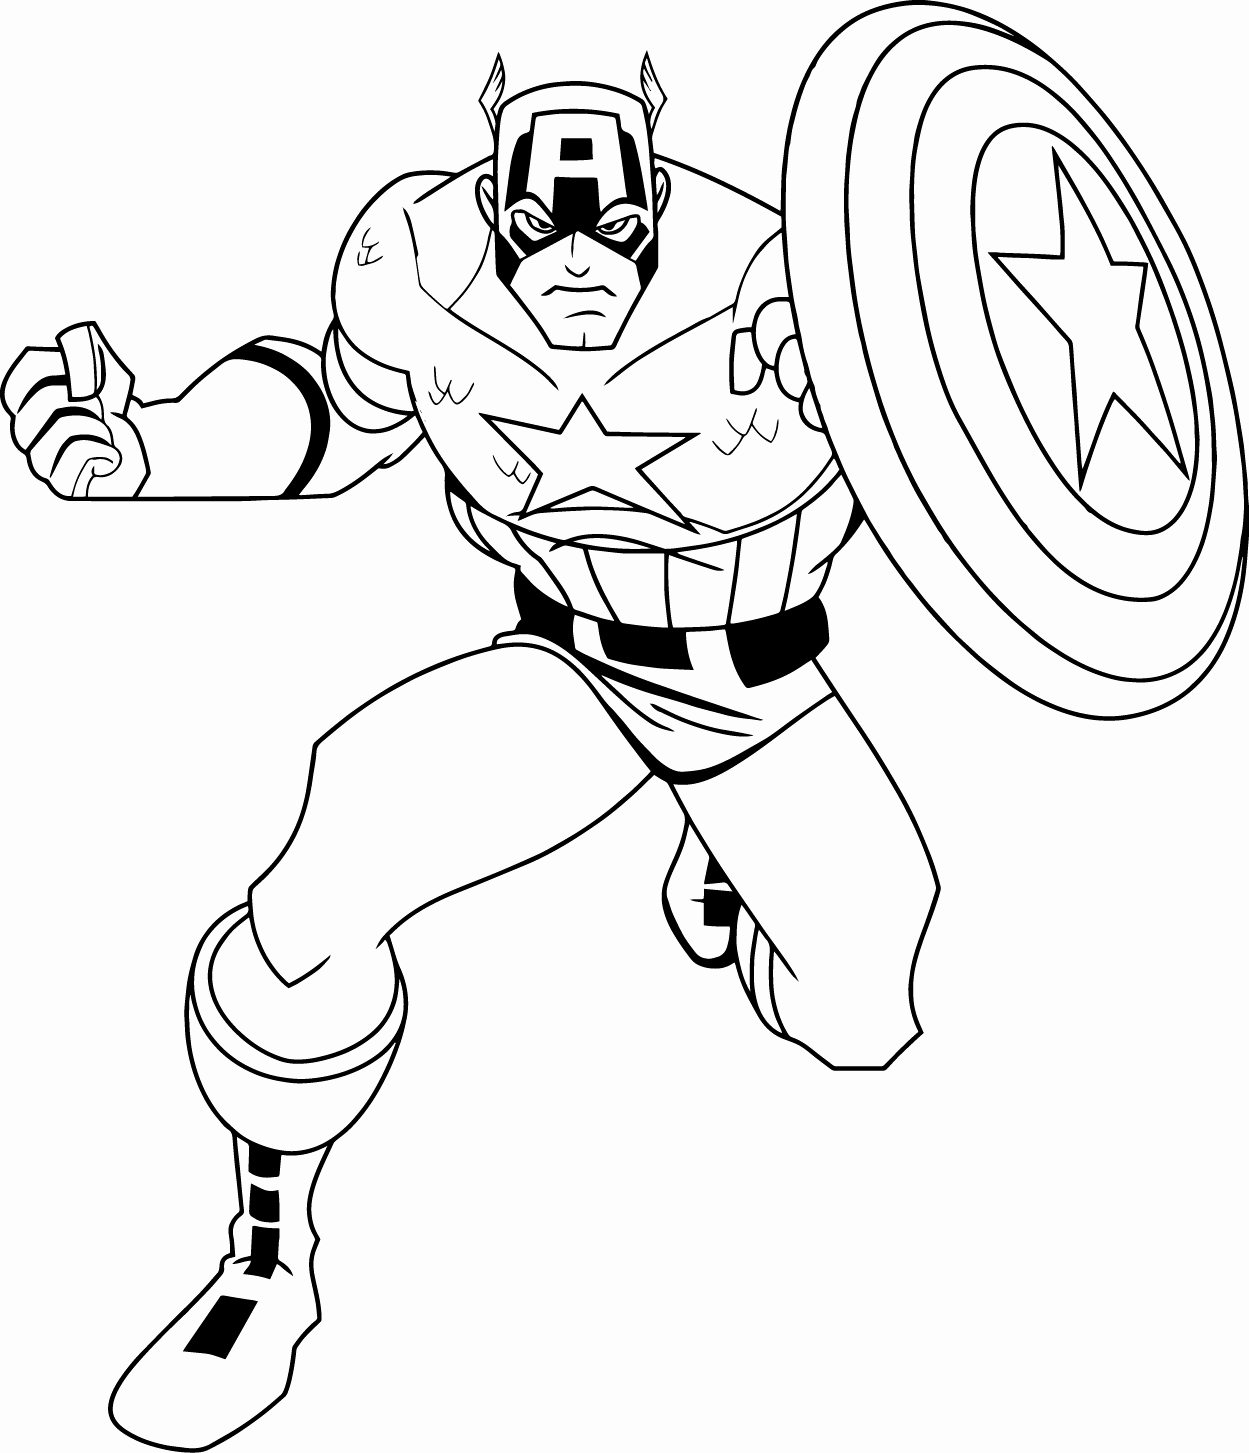 Captain America Winter Soldier Coloring Pages American Soldier Coloring Pages At Getdrawings Free For